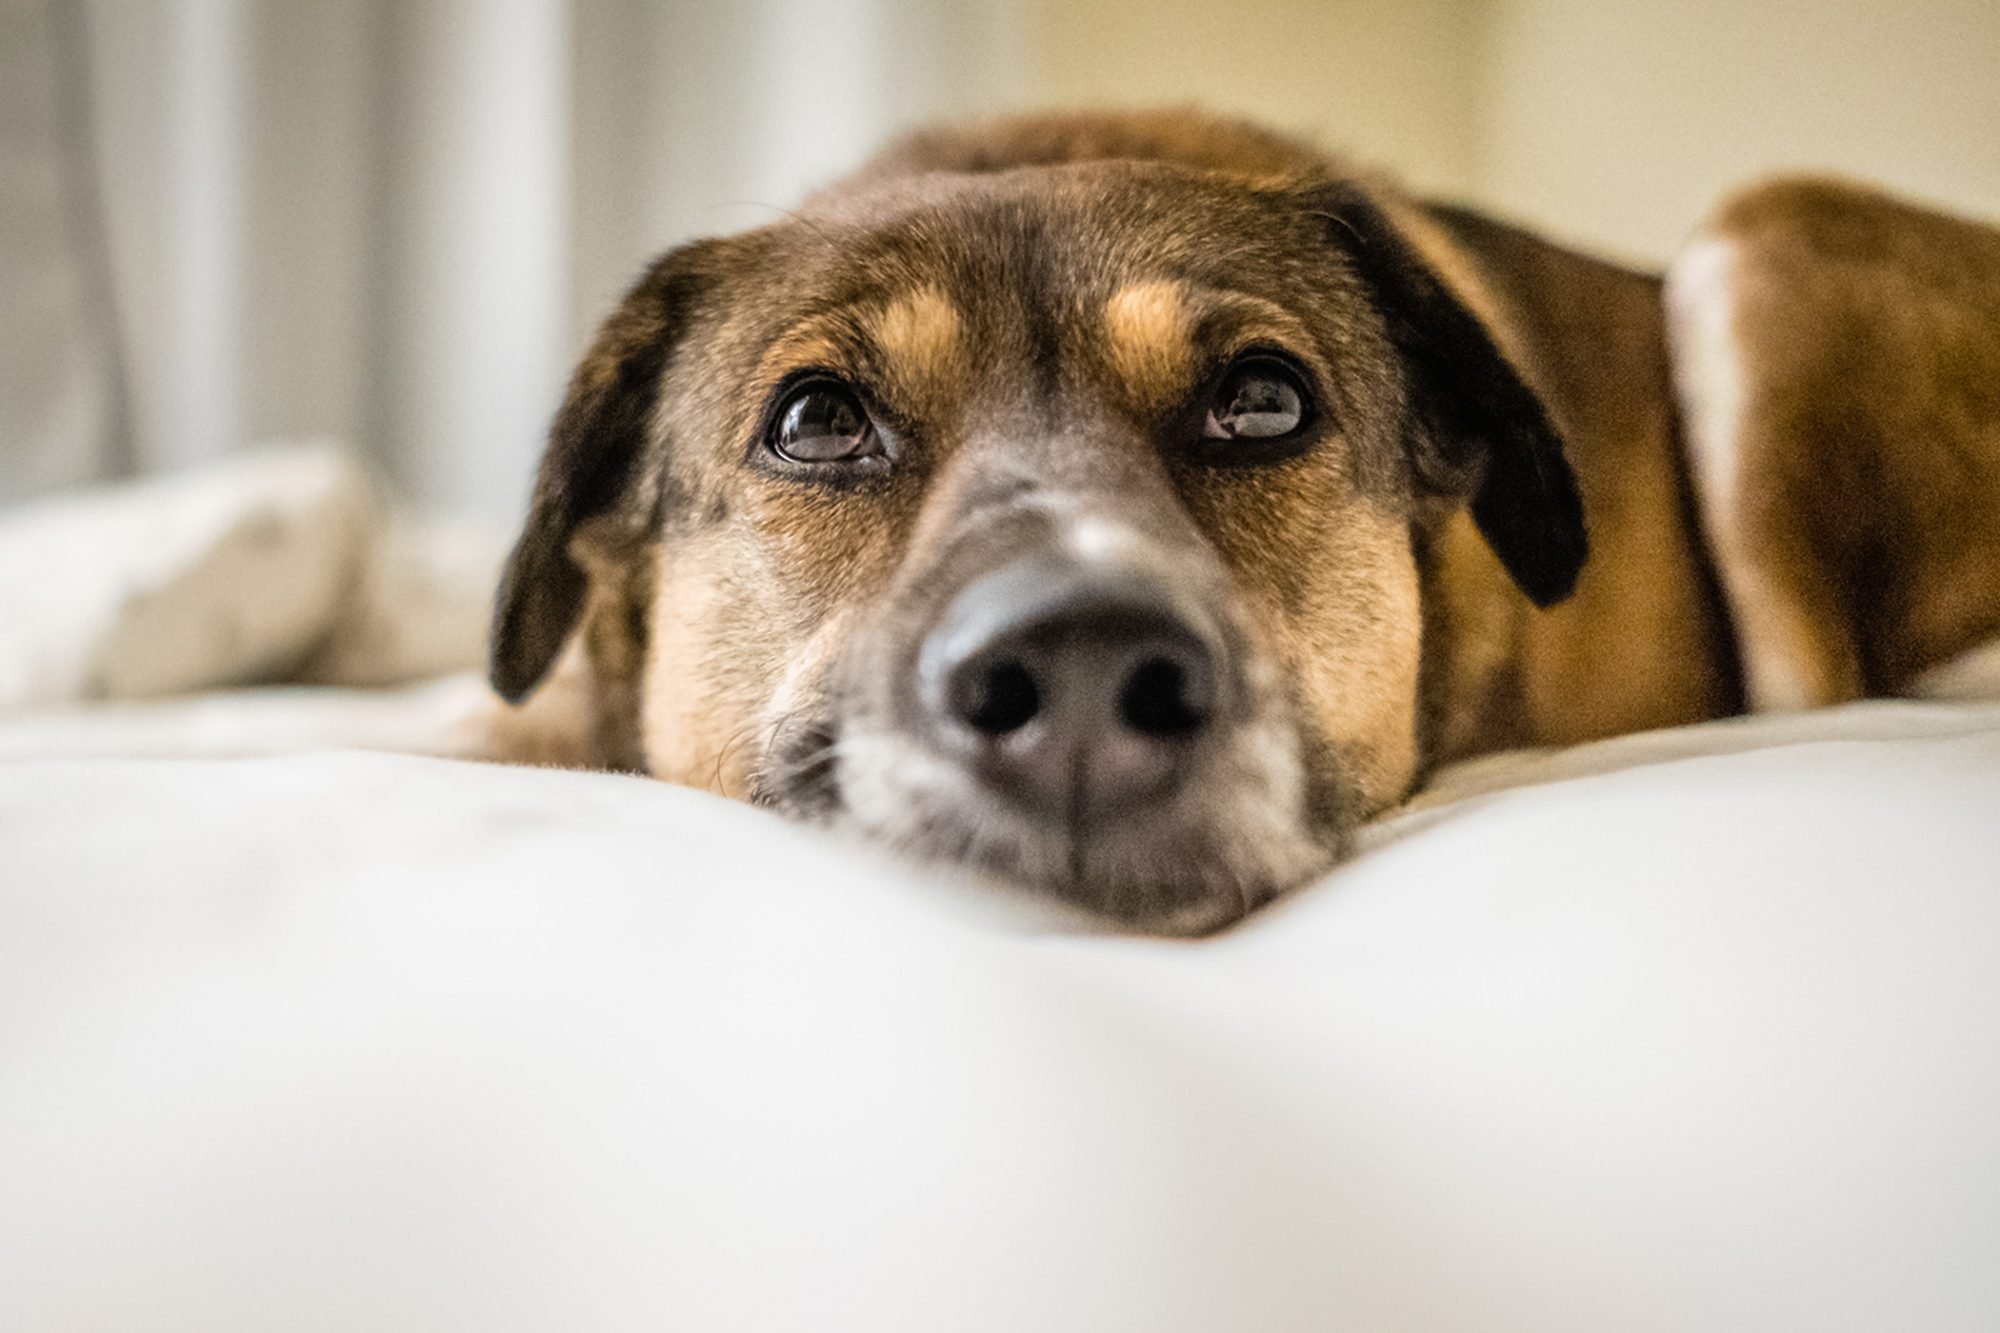 dog lying in bed looking up